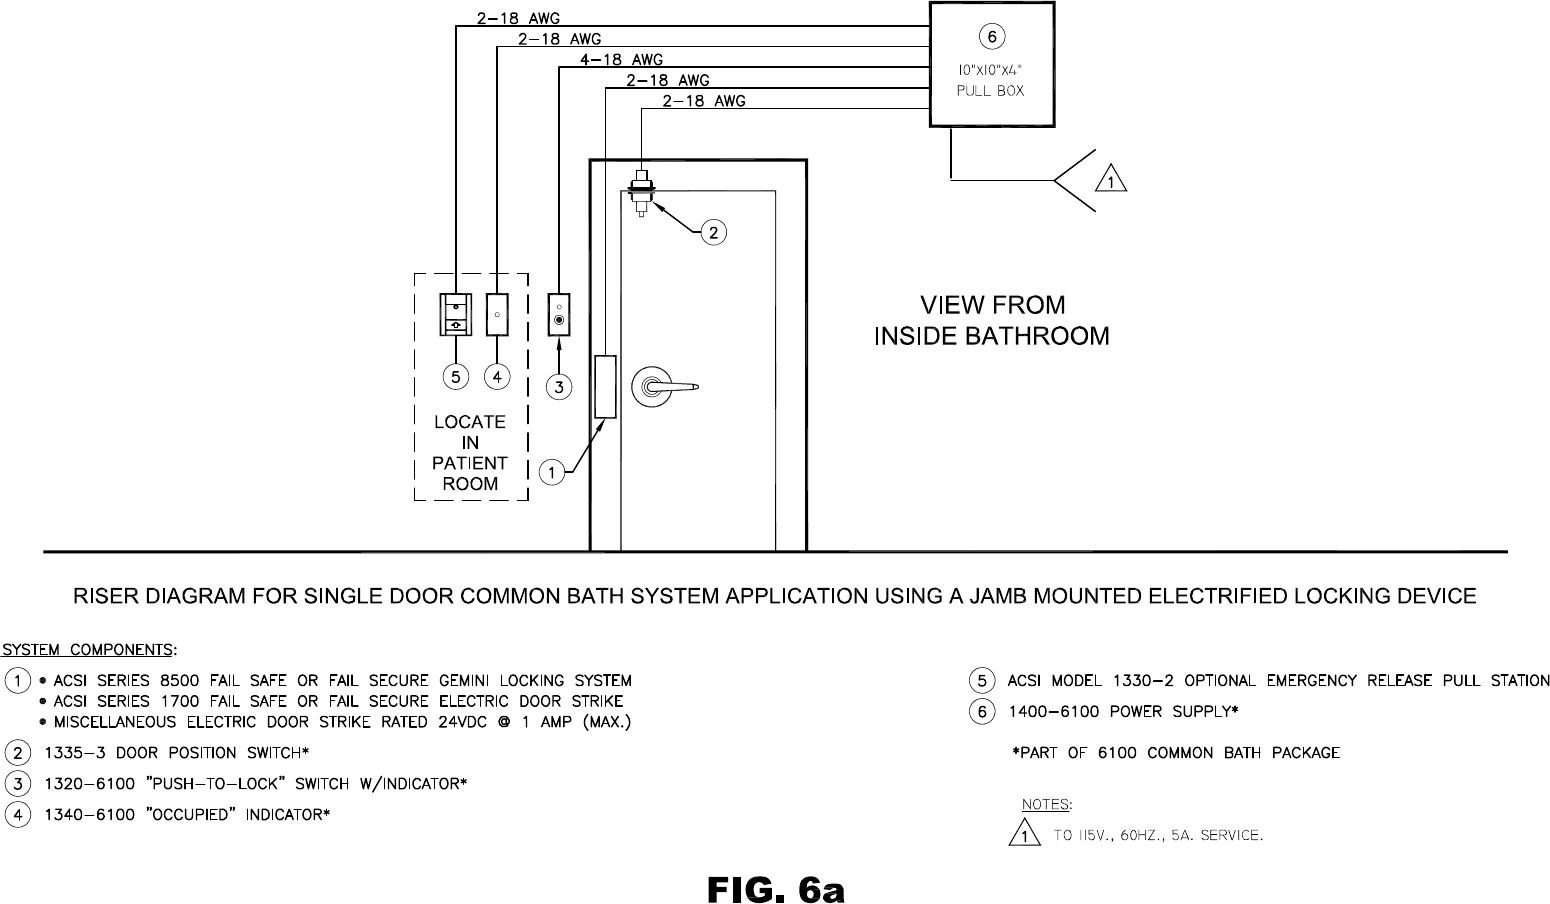 Adams Rite 7400 Wiring Diagram Regarding Cute Electric Strike X10 The Hes Series Securityinfowatchcom Knock Sensor Harness